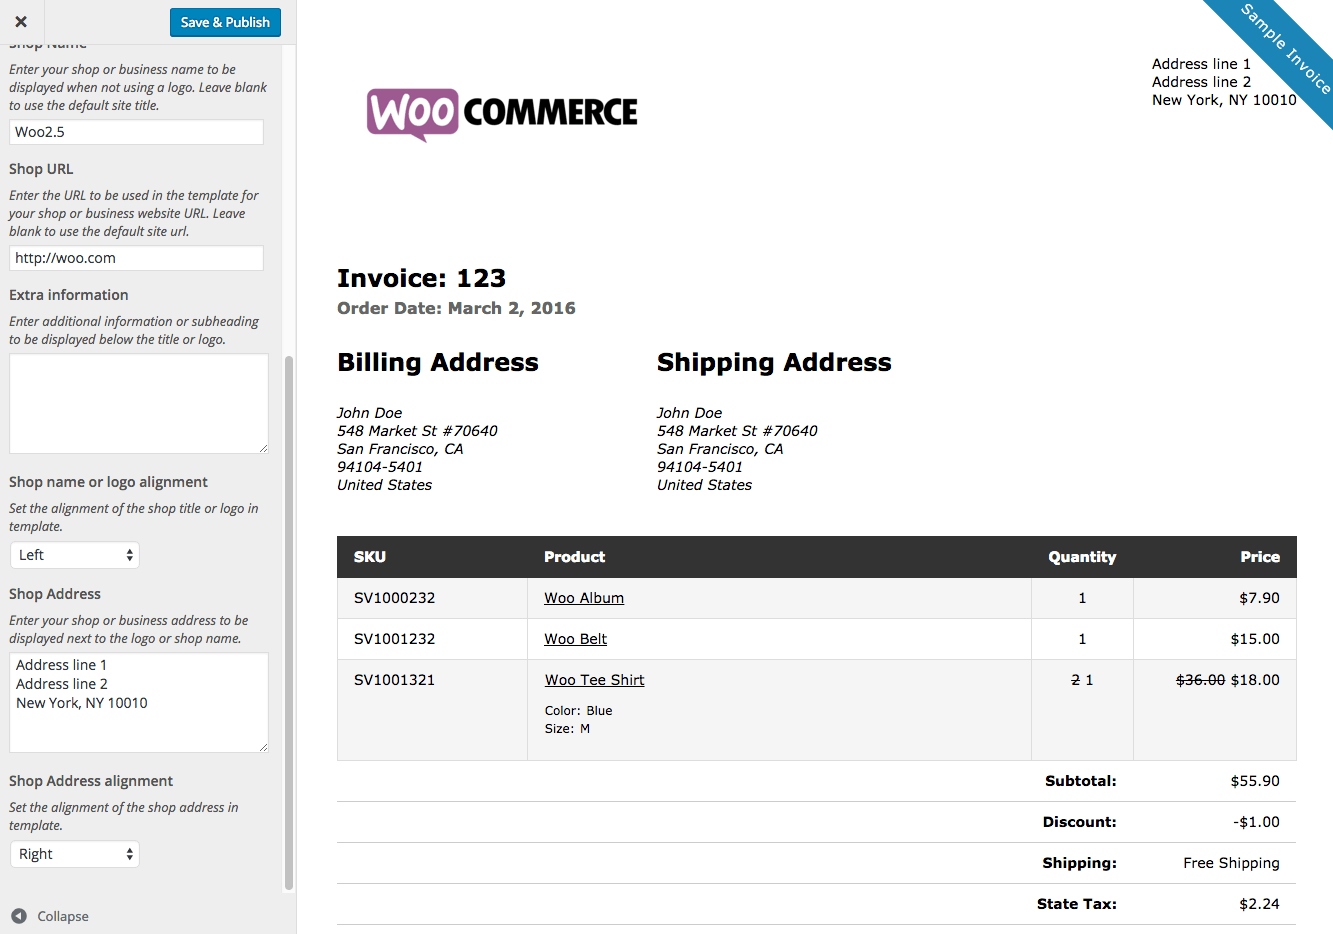 Angkajituus  Outstanding Woocommerce Print Invoices Amp Packing Lists  Woocommerce Docs With Likable Woocommerce Print Invoices  Packing Lists Customizer With Astonishing Simple Invoices Review Also Whmcs Invoice Templates In Addition Invoices On Ebay And Invoice Prices Of Cars As Well As Consultancy Invoice Additionally Selective Invoice Discounting From Docswoocommercecom With Angkajituus  Likable Woocommerce Print Invoices Amp Packing Lists  Woocommerce Docs With Astonishing Woocommerce Print Invoices  Packing Lists Customizer And Outstanding Simple Invoices Review Also Whmcs Invoice Templates In Addition Invoices On Ebay From Docswoocommercecom